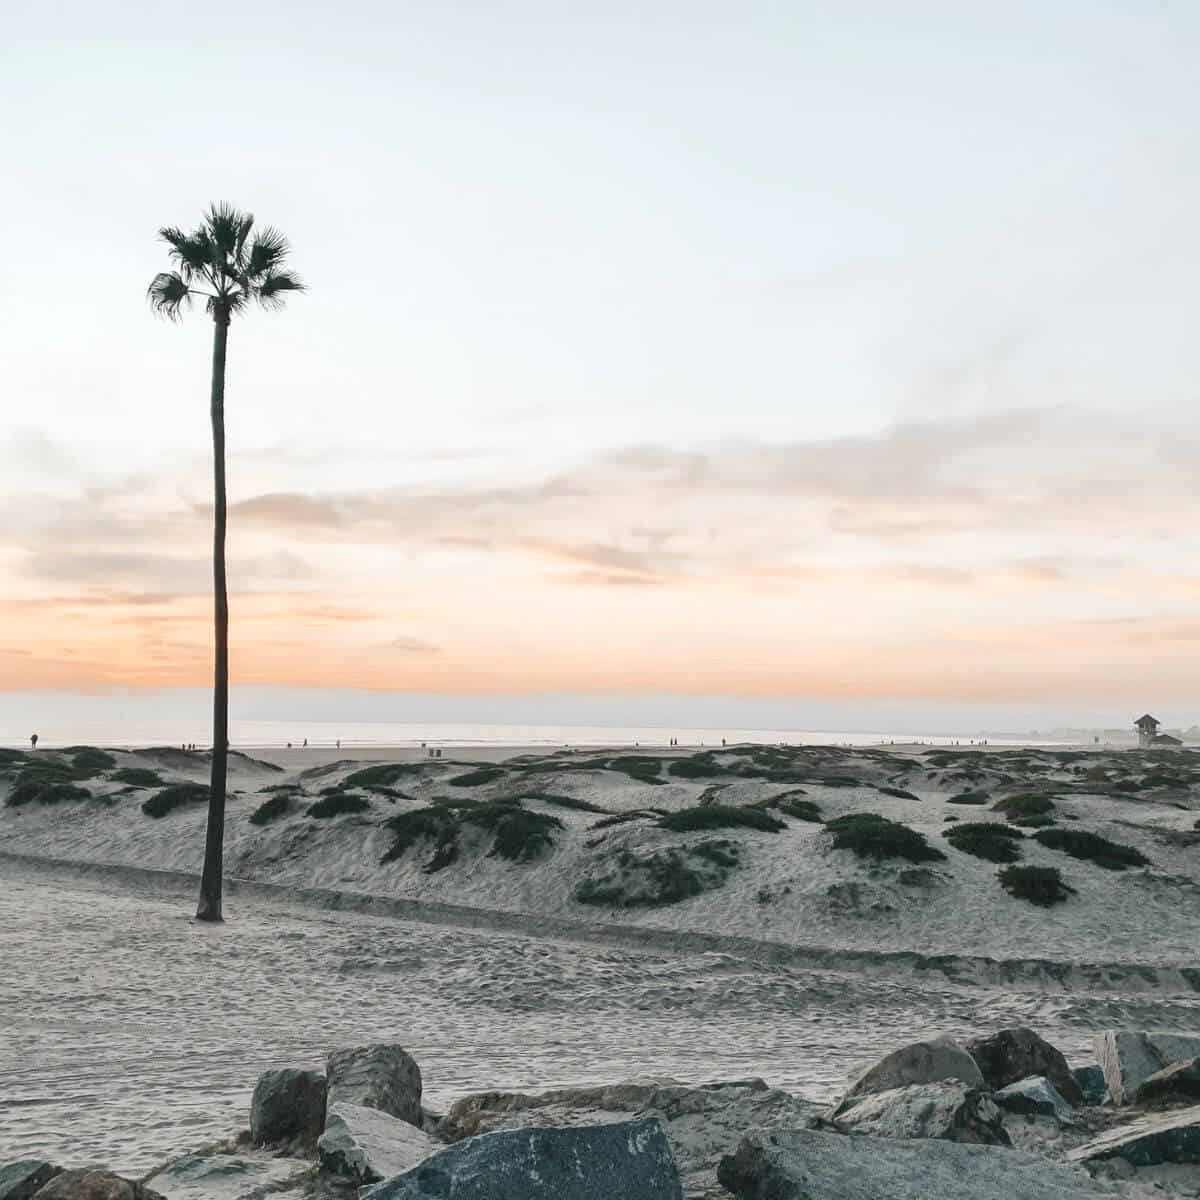 Palm tree on a beach shore during a sunset.